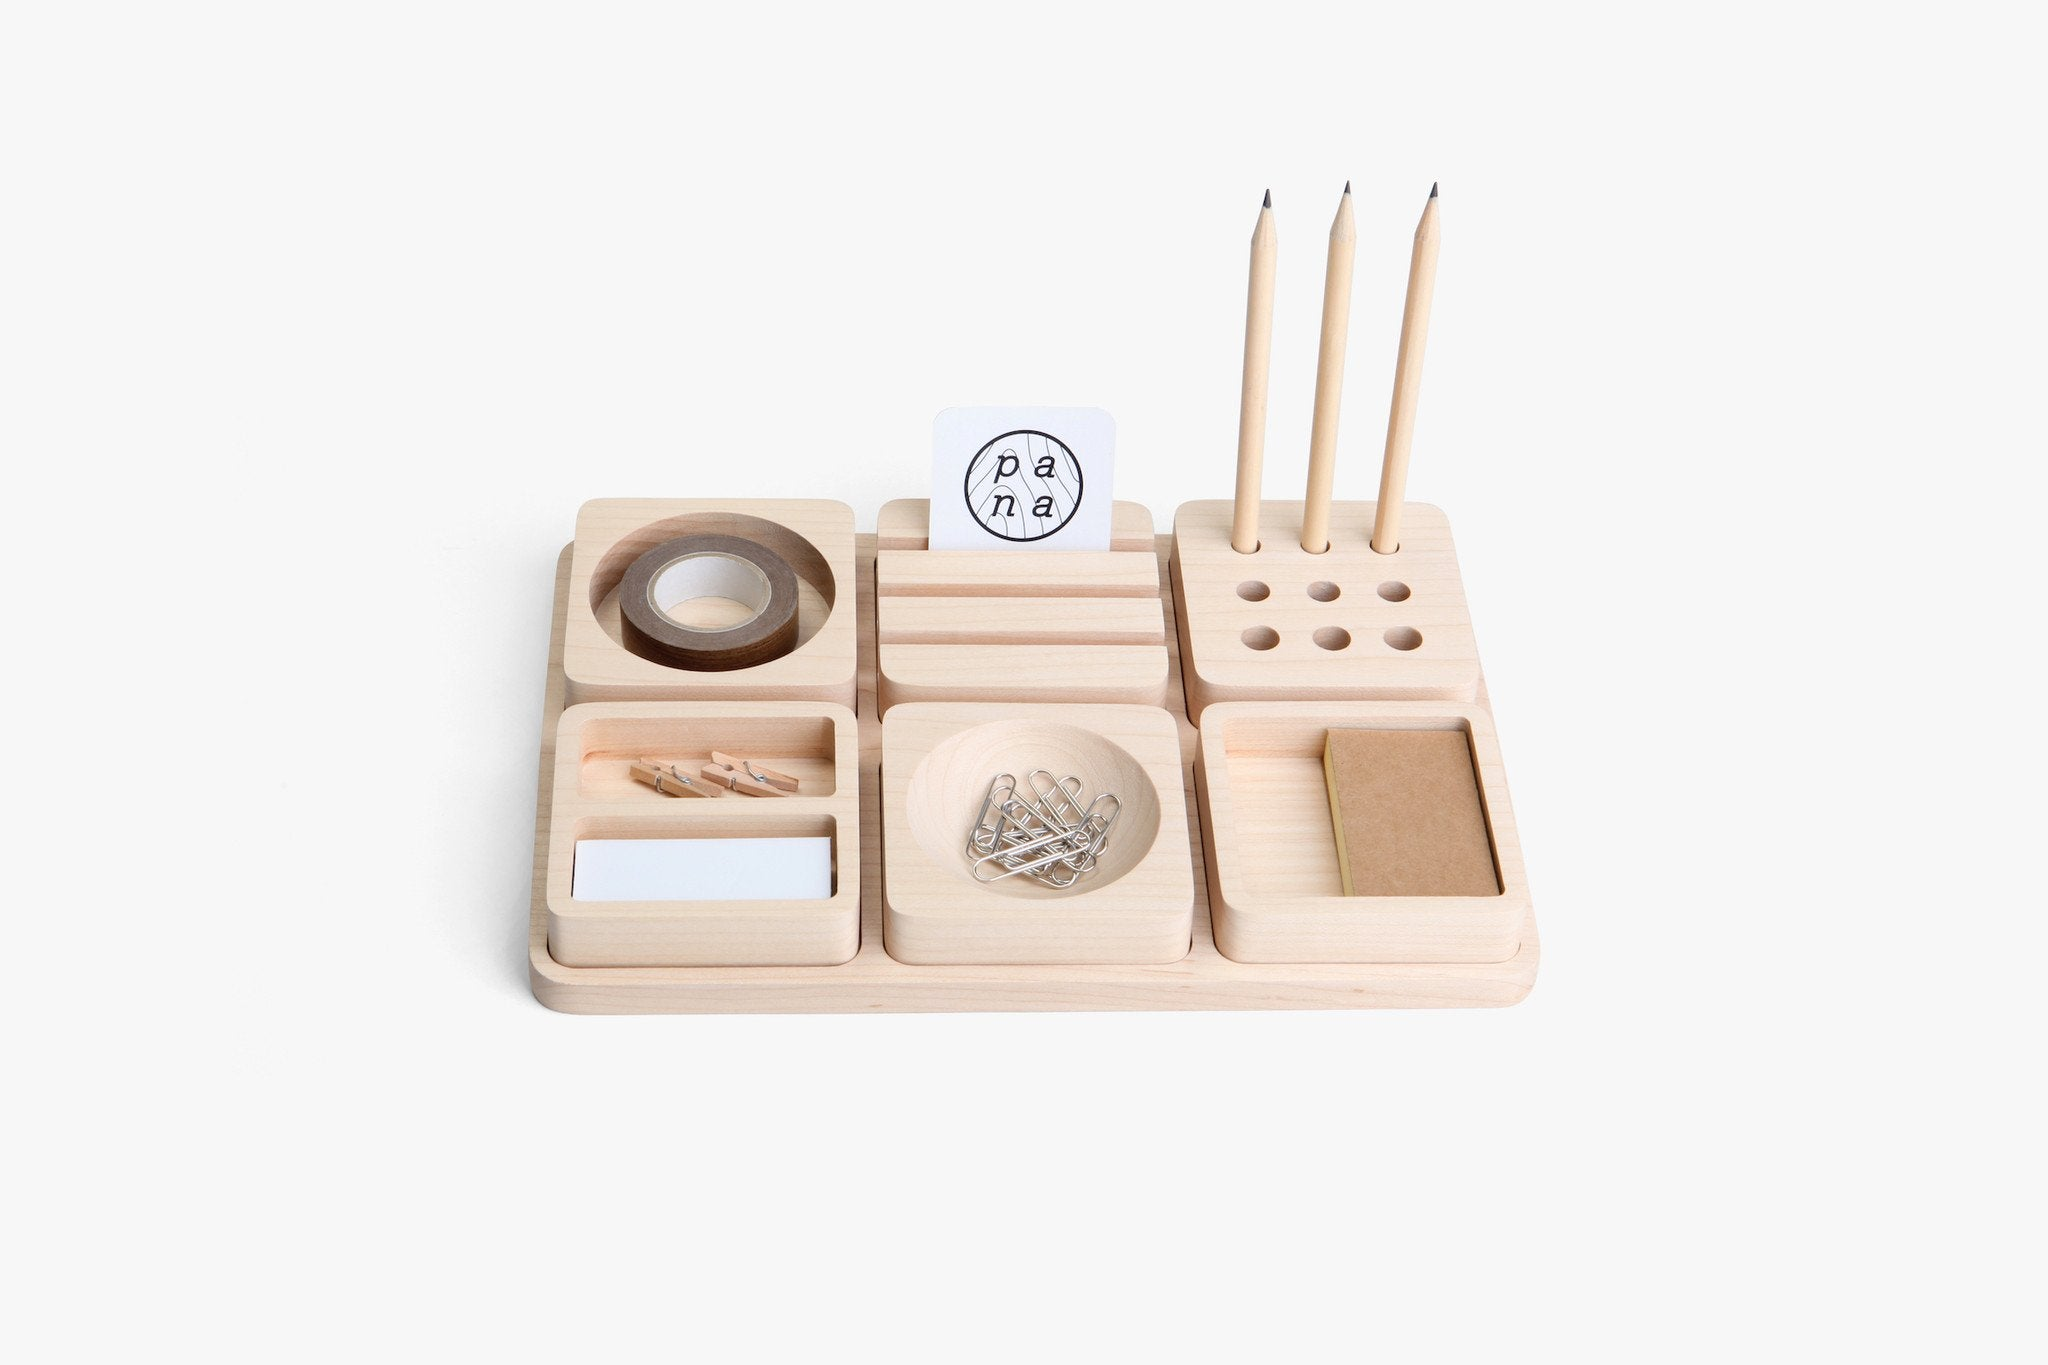 Tofu: Stationery Set